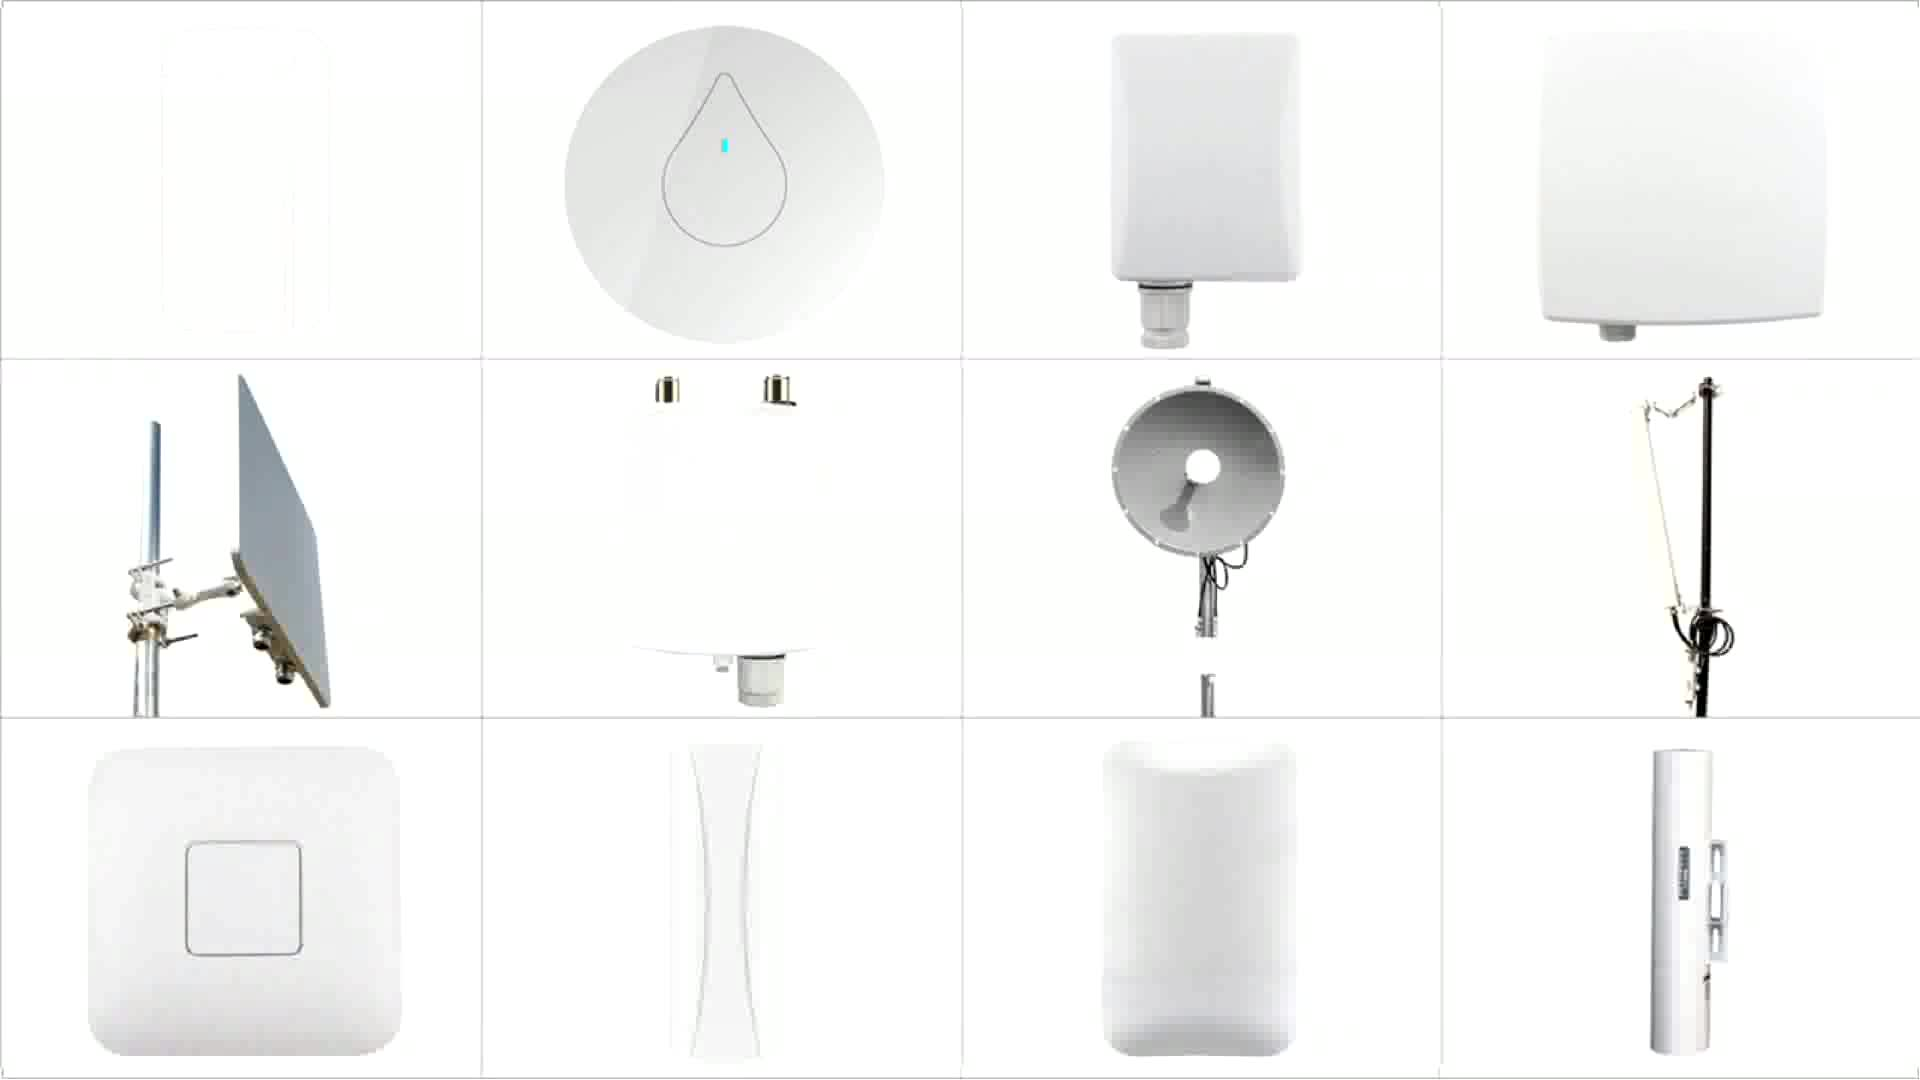 3 km hotspot wifi range be used for cctv security camera solar mounting system